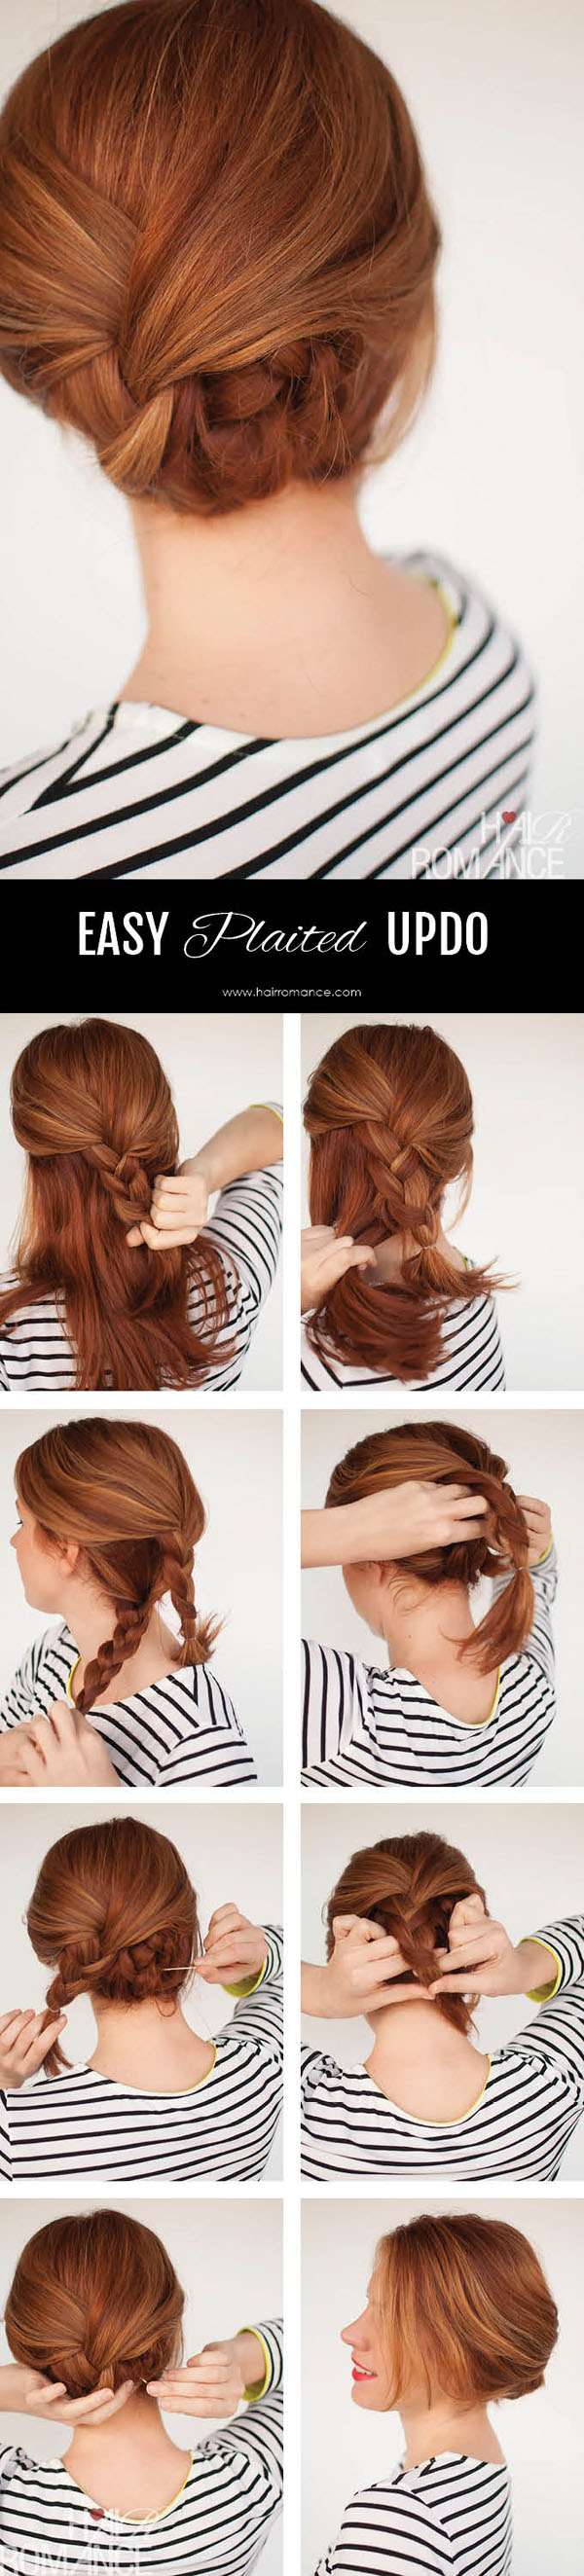 Hair-Romance-easy-plaited-updo-hairstyle-tutorial